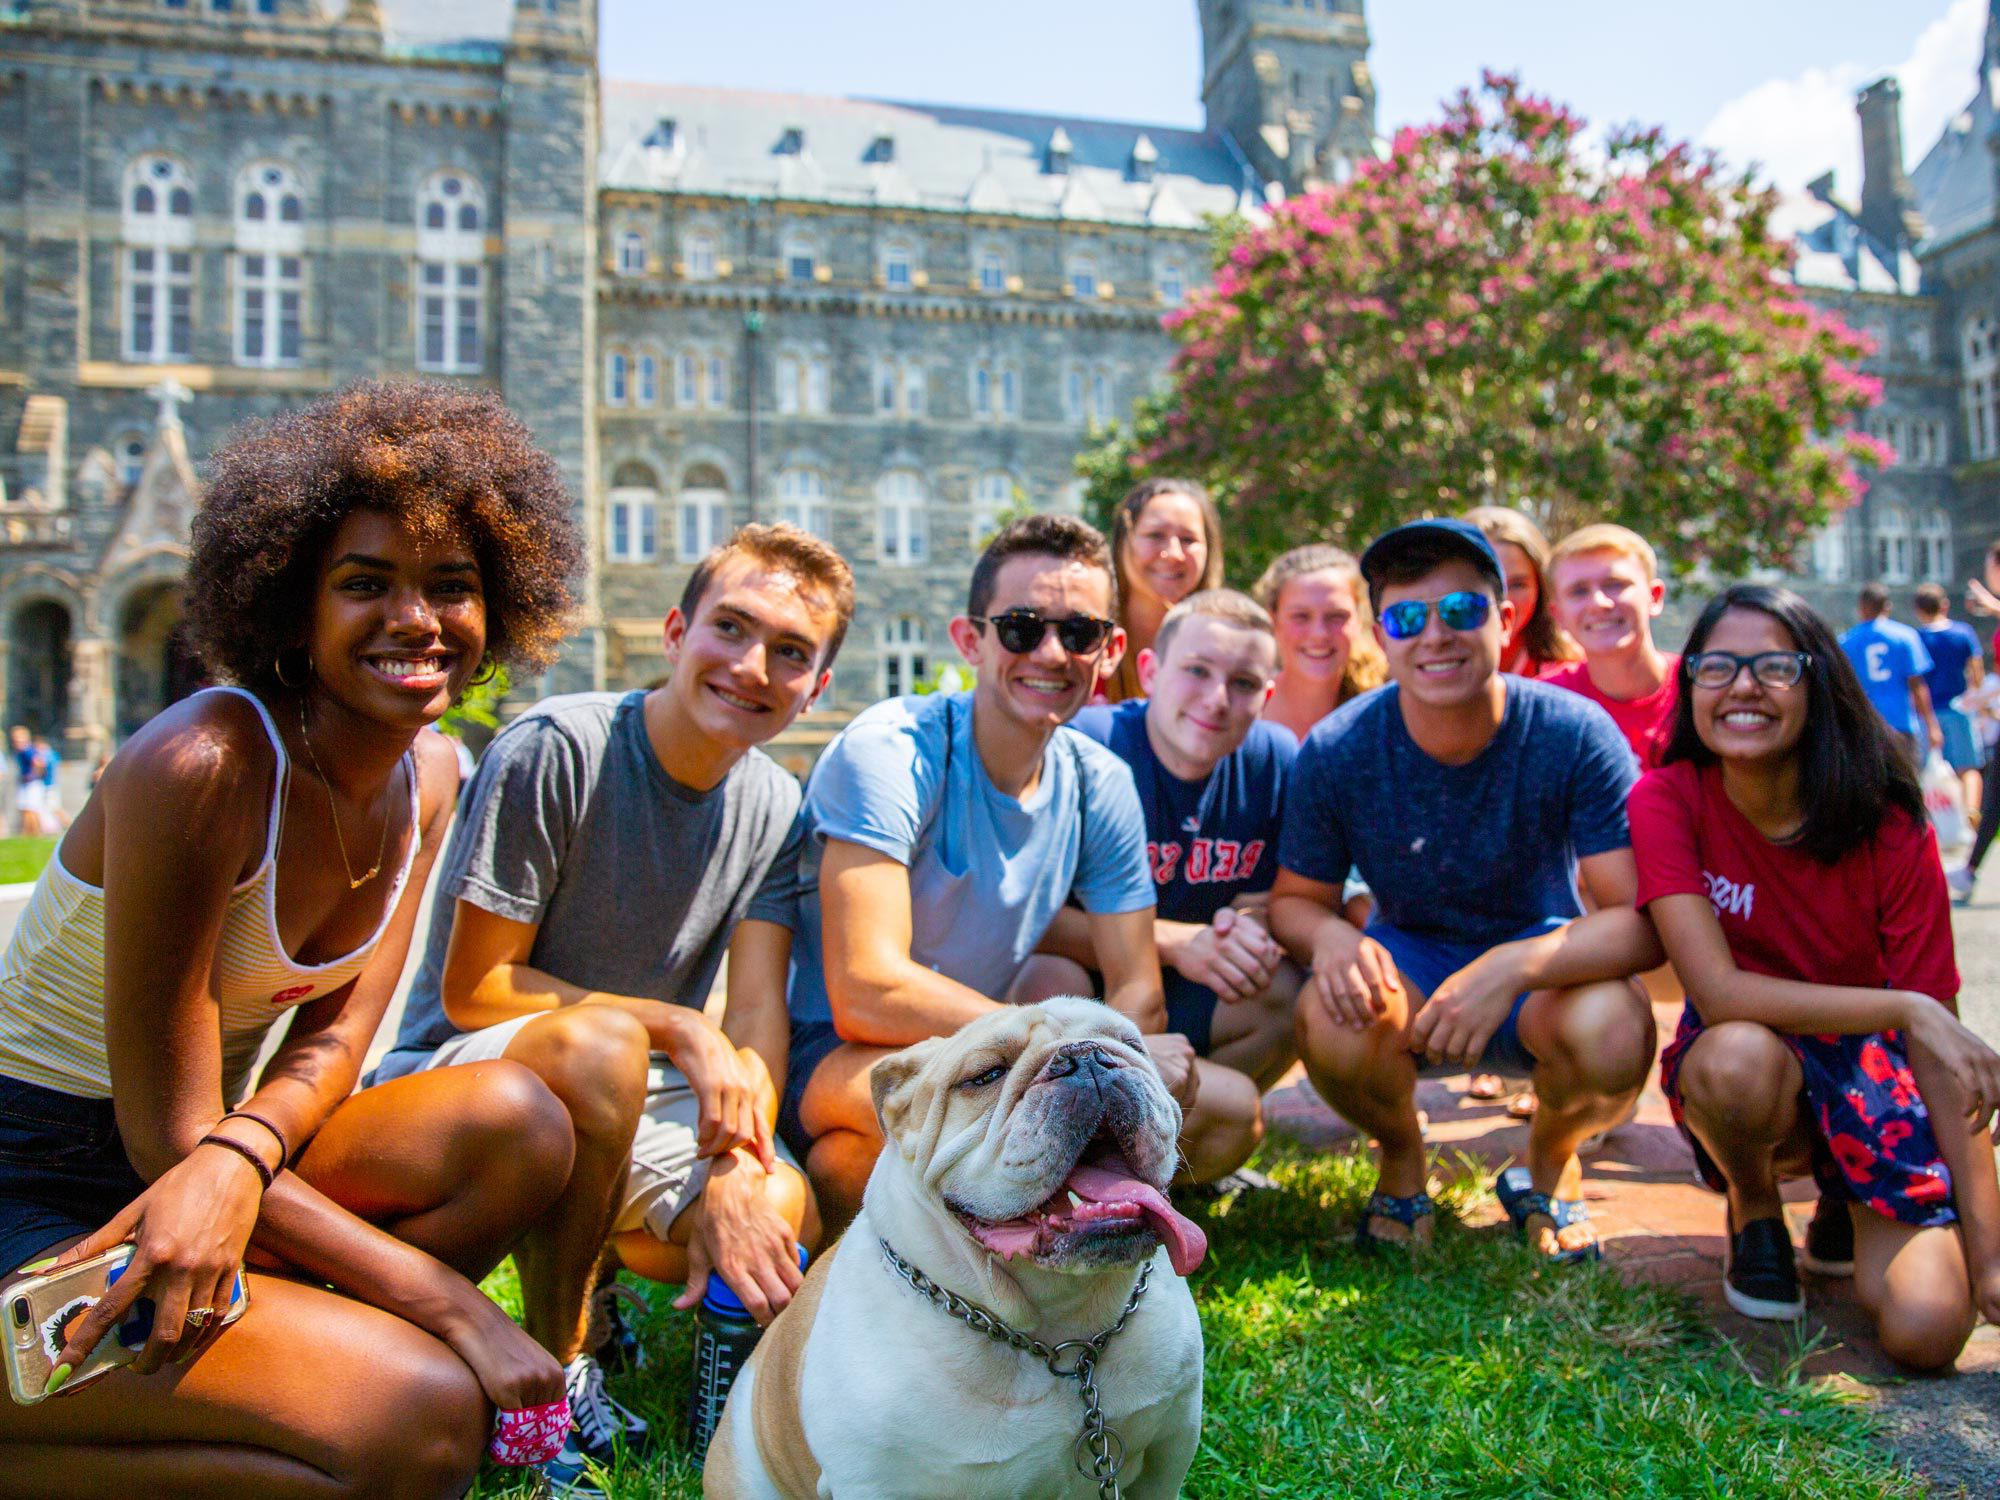 A group of students sit infront 的 Healy Hall, posing for a photo with Jack the bulldog.